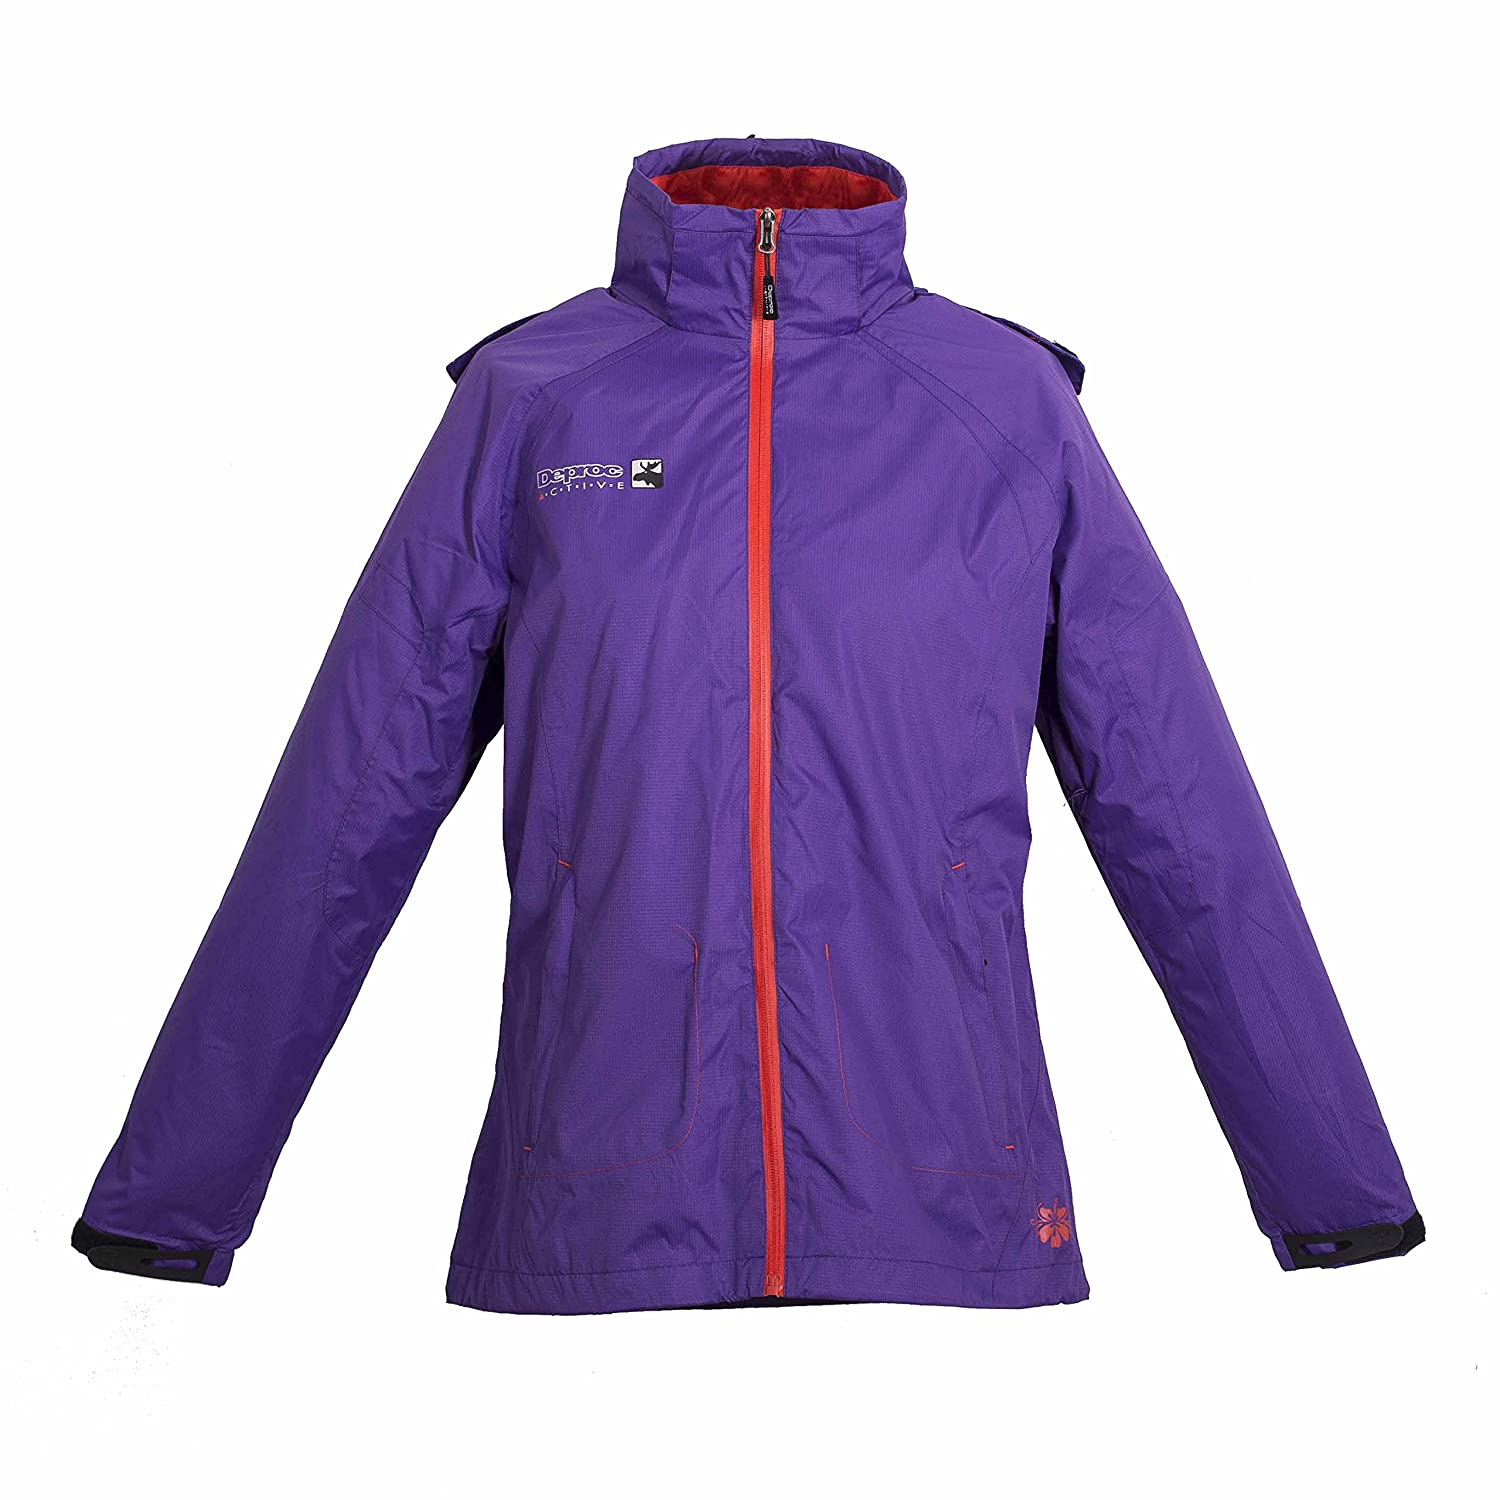 DEPROC-Active Damen Funktionsjacke und Outdoorjacke Fairweather